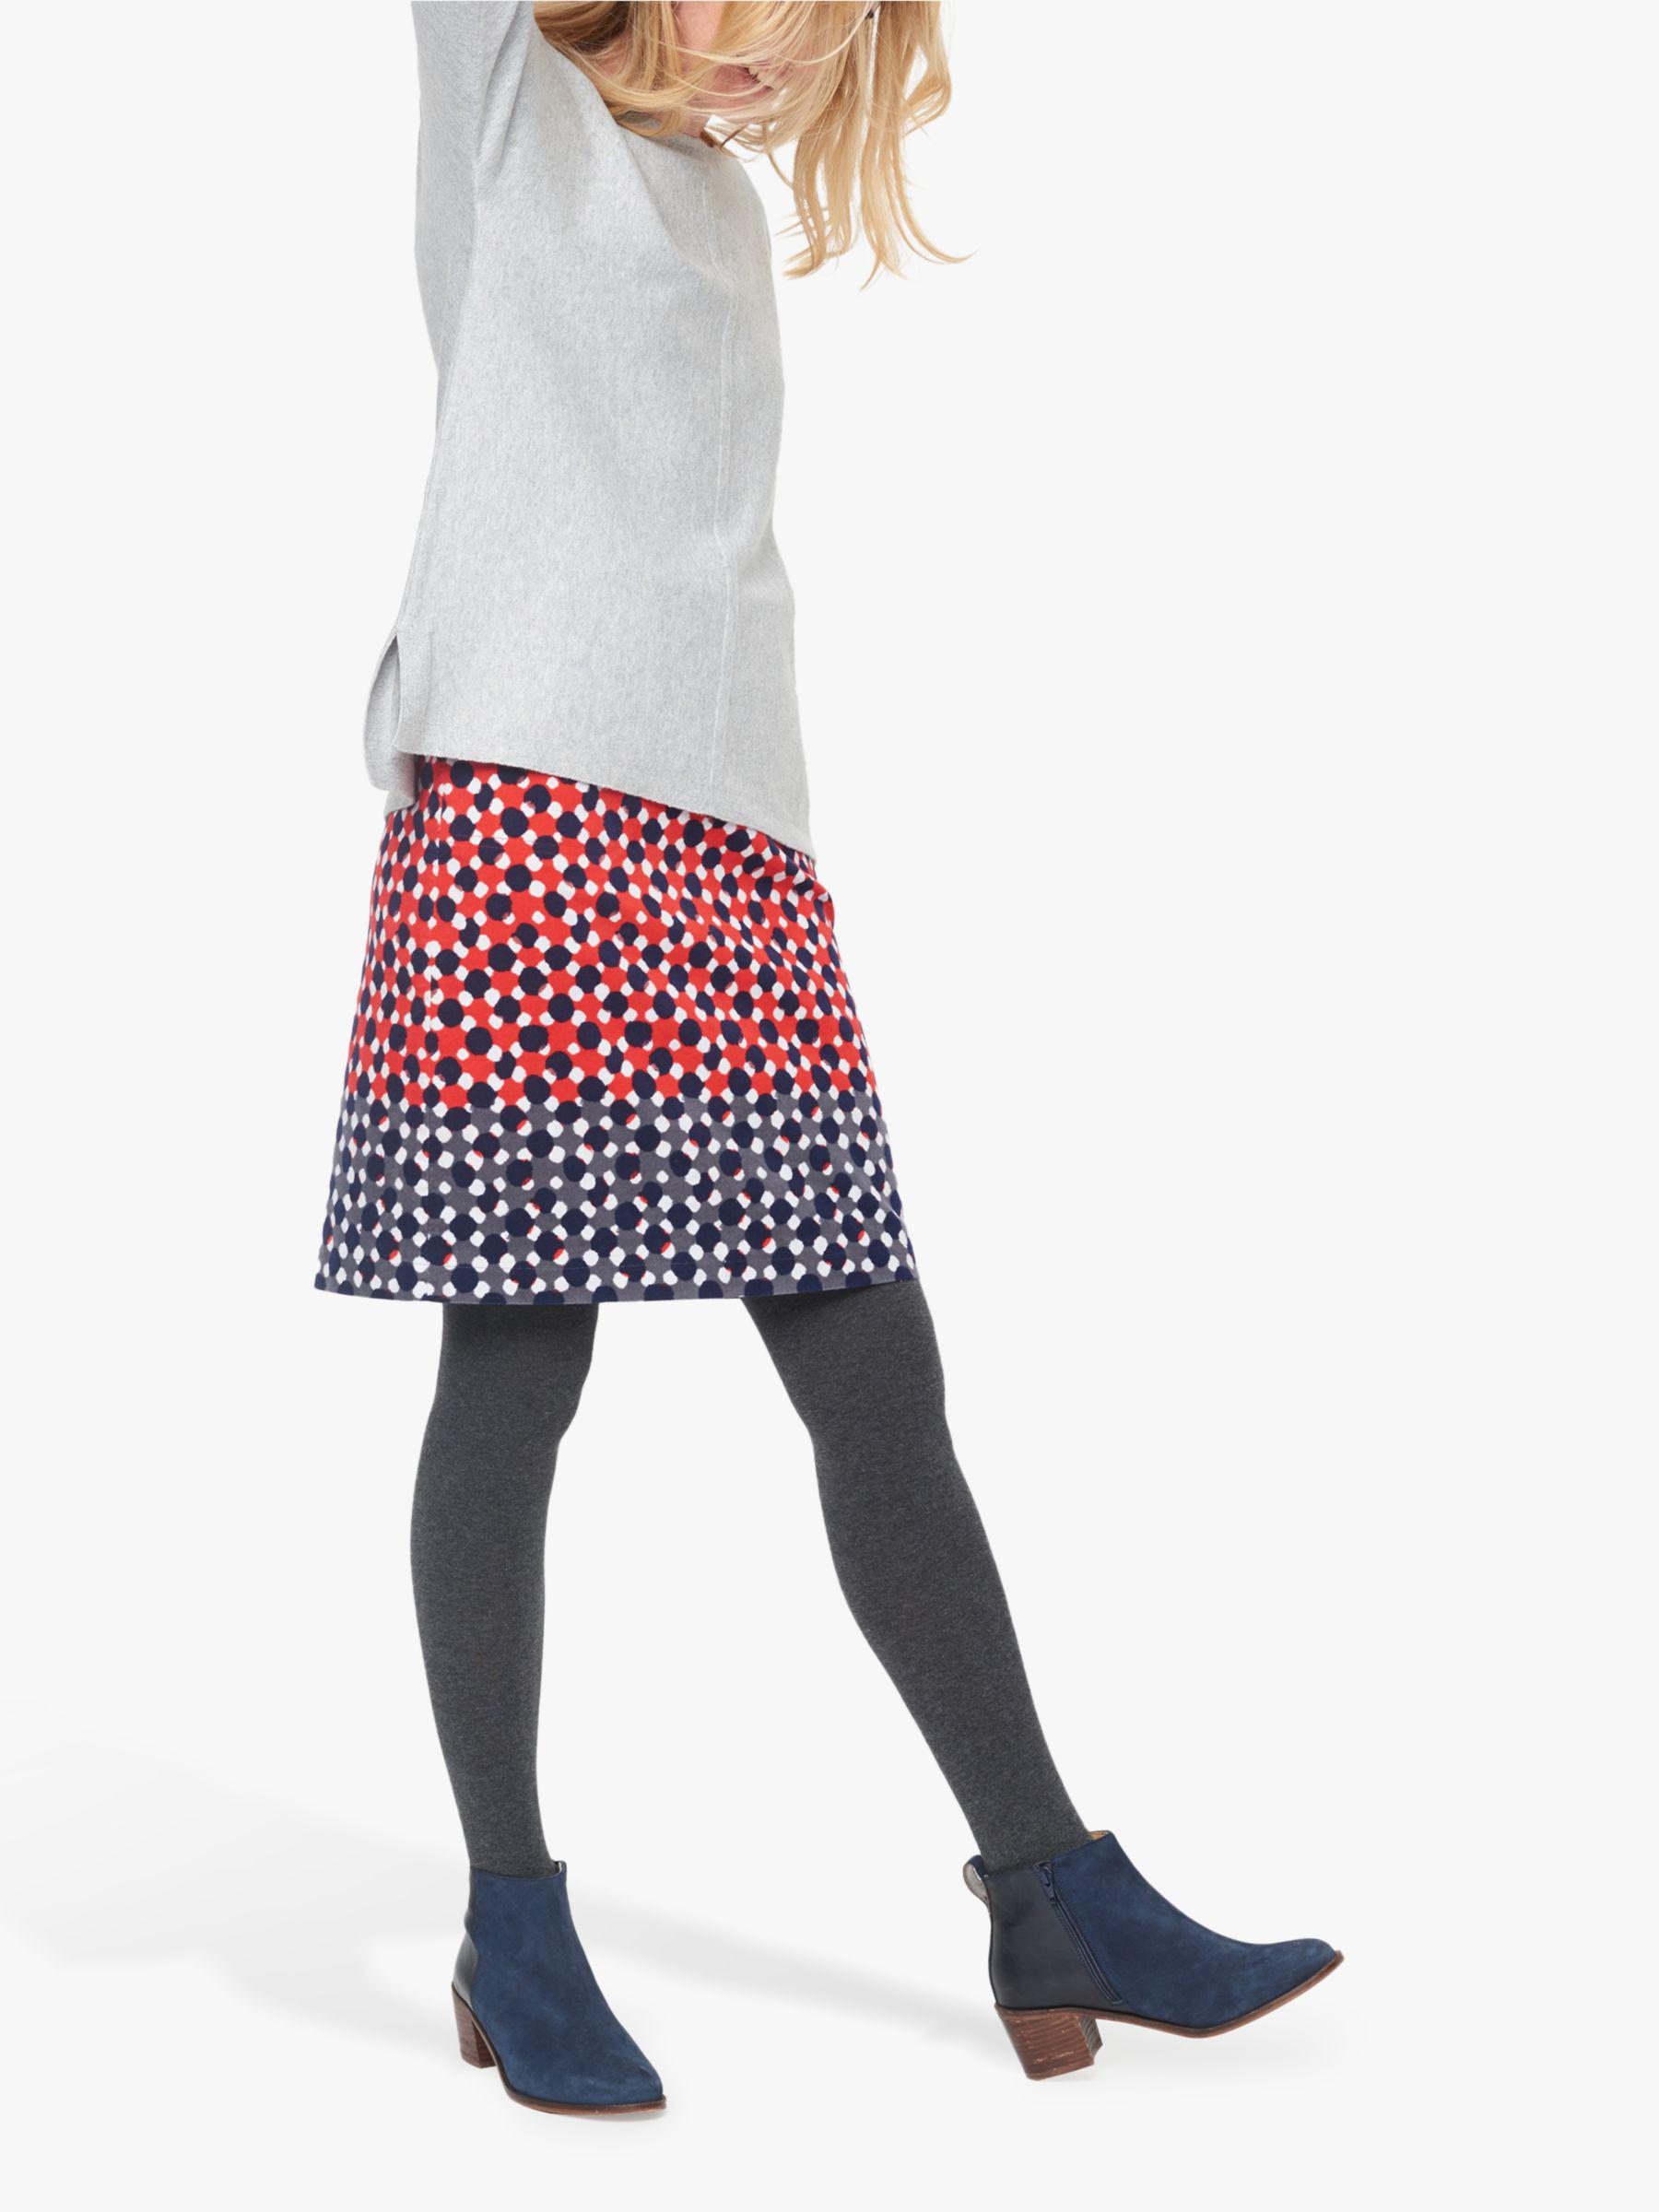 cac1bc6bb5 White Stuff Hedgerow Velvet Skirt in Red - Save 10% - Lyst